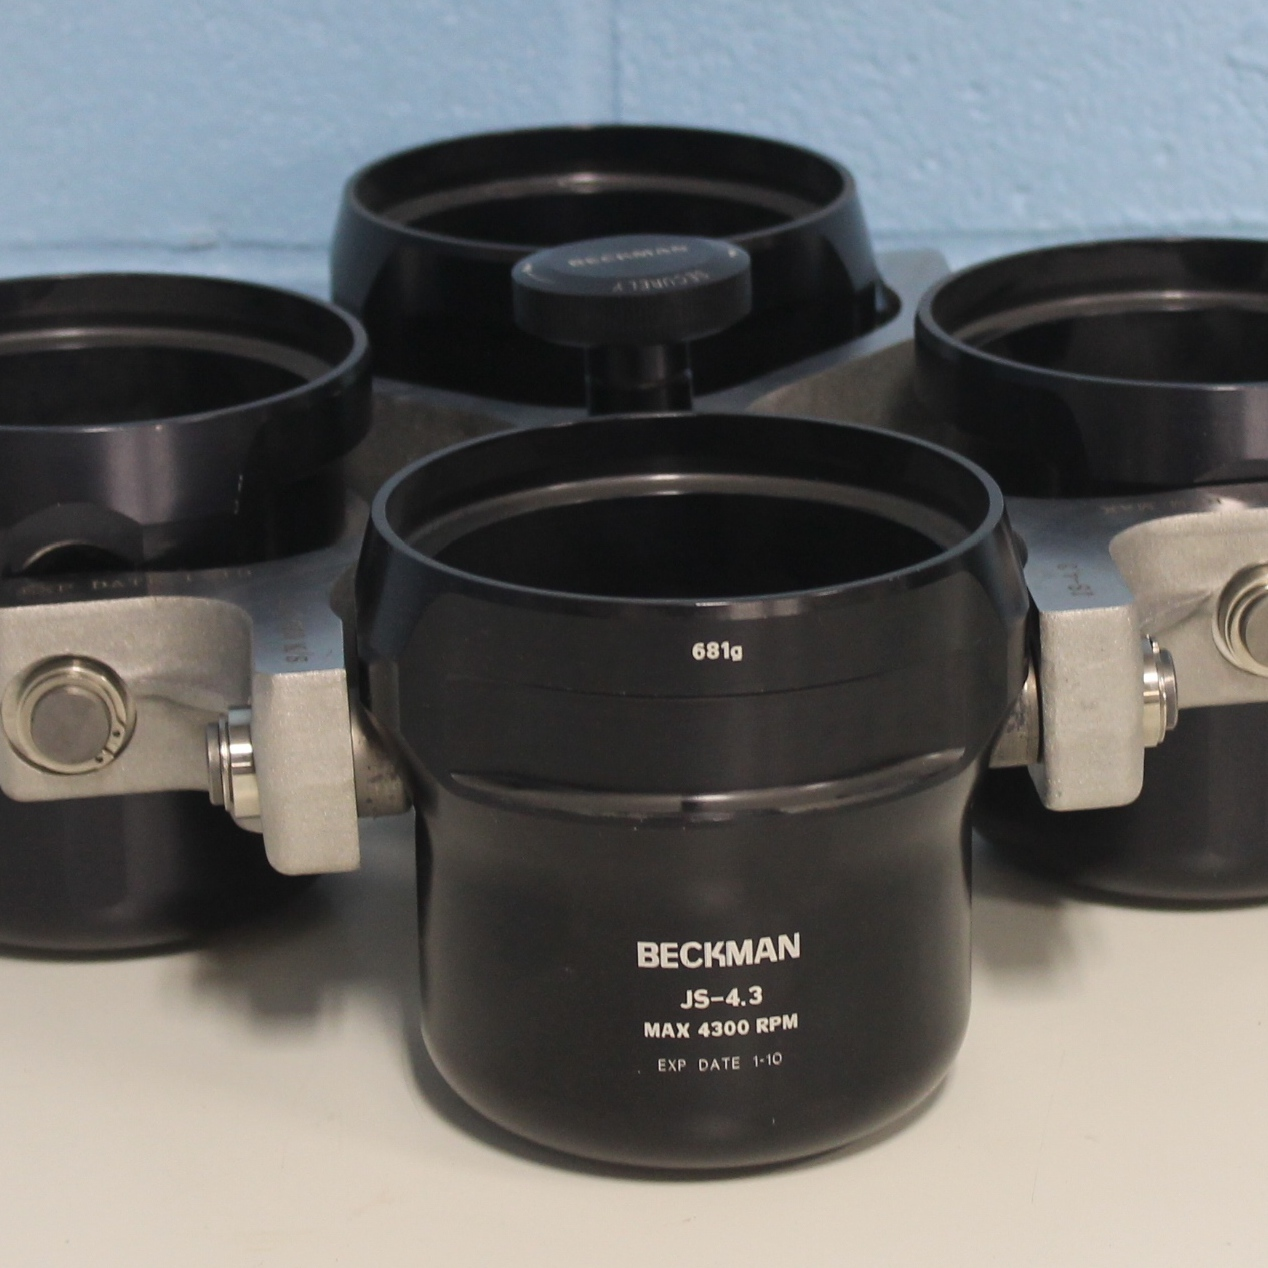 Beckman Coulter JS-4.3 Rotor with Buckets Image